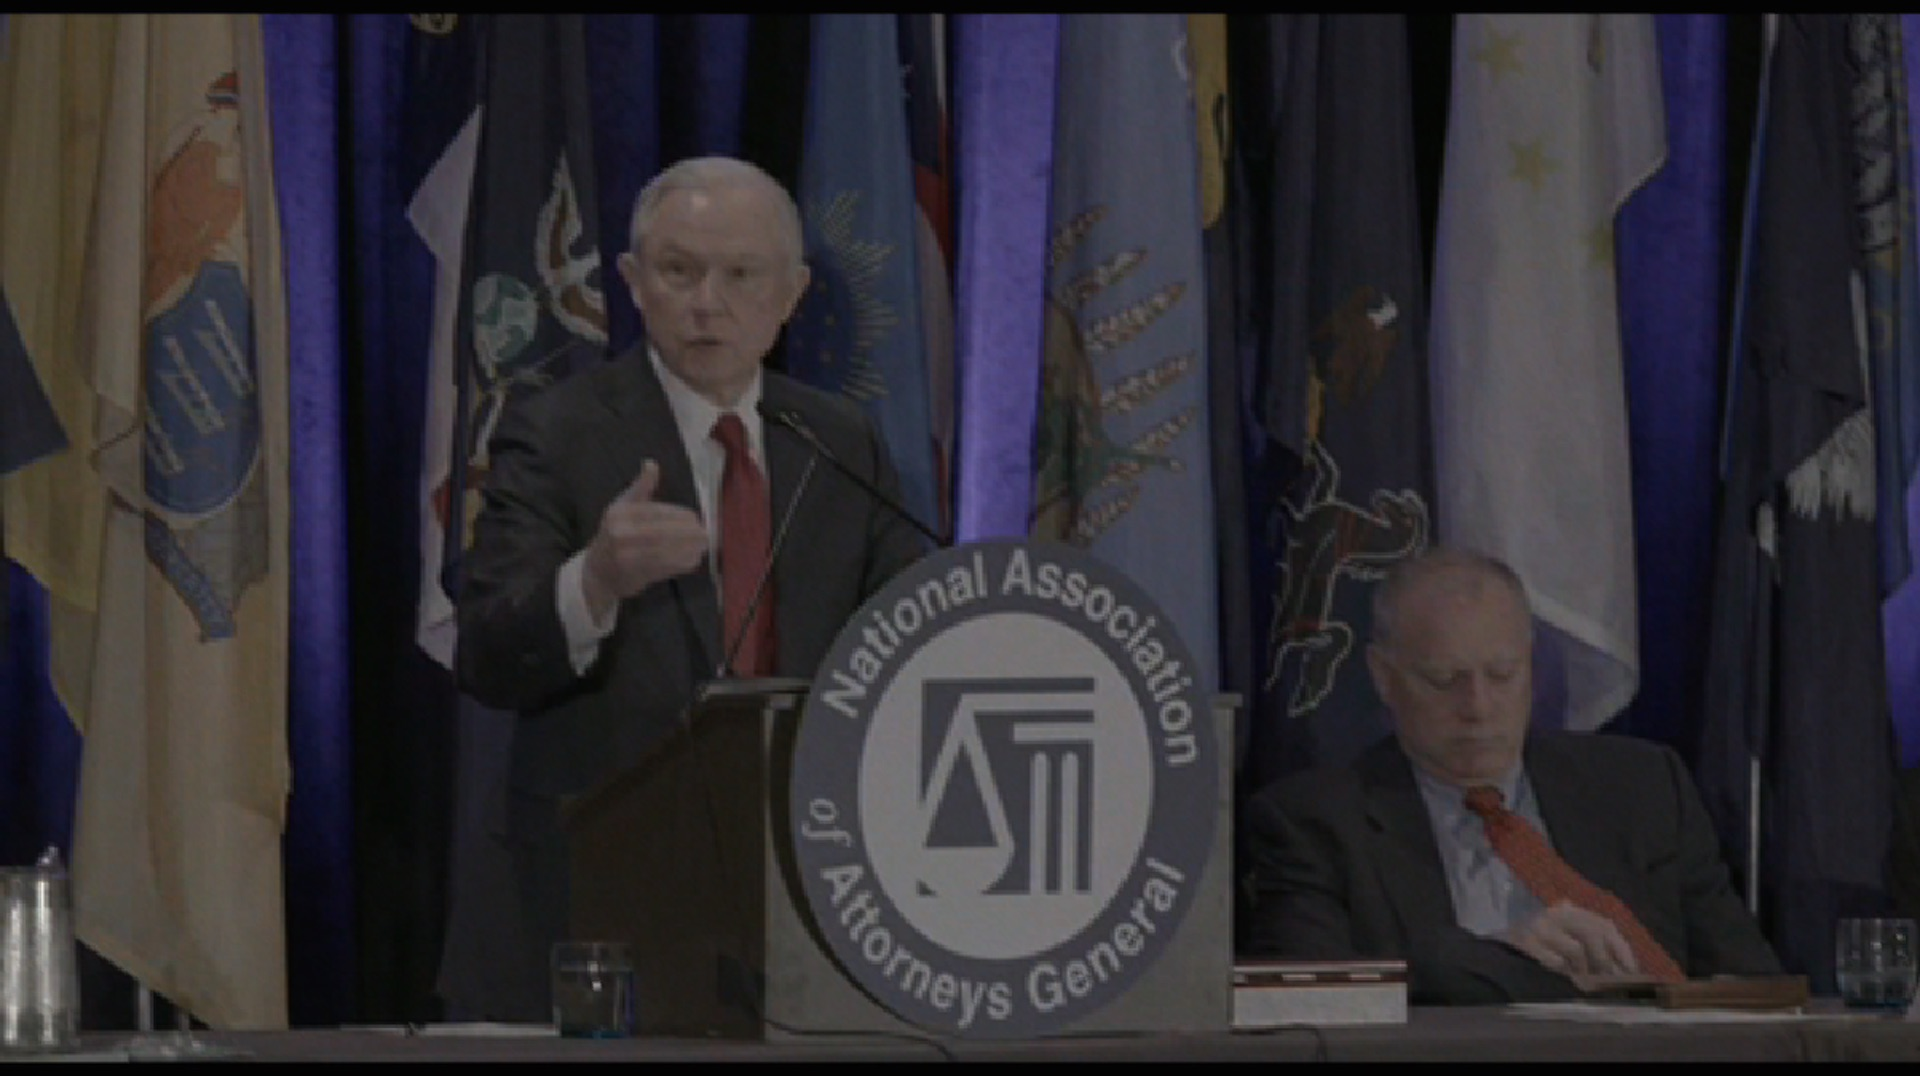 Sessions weighs return to harsher punishments for low-level drug crimes